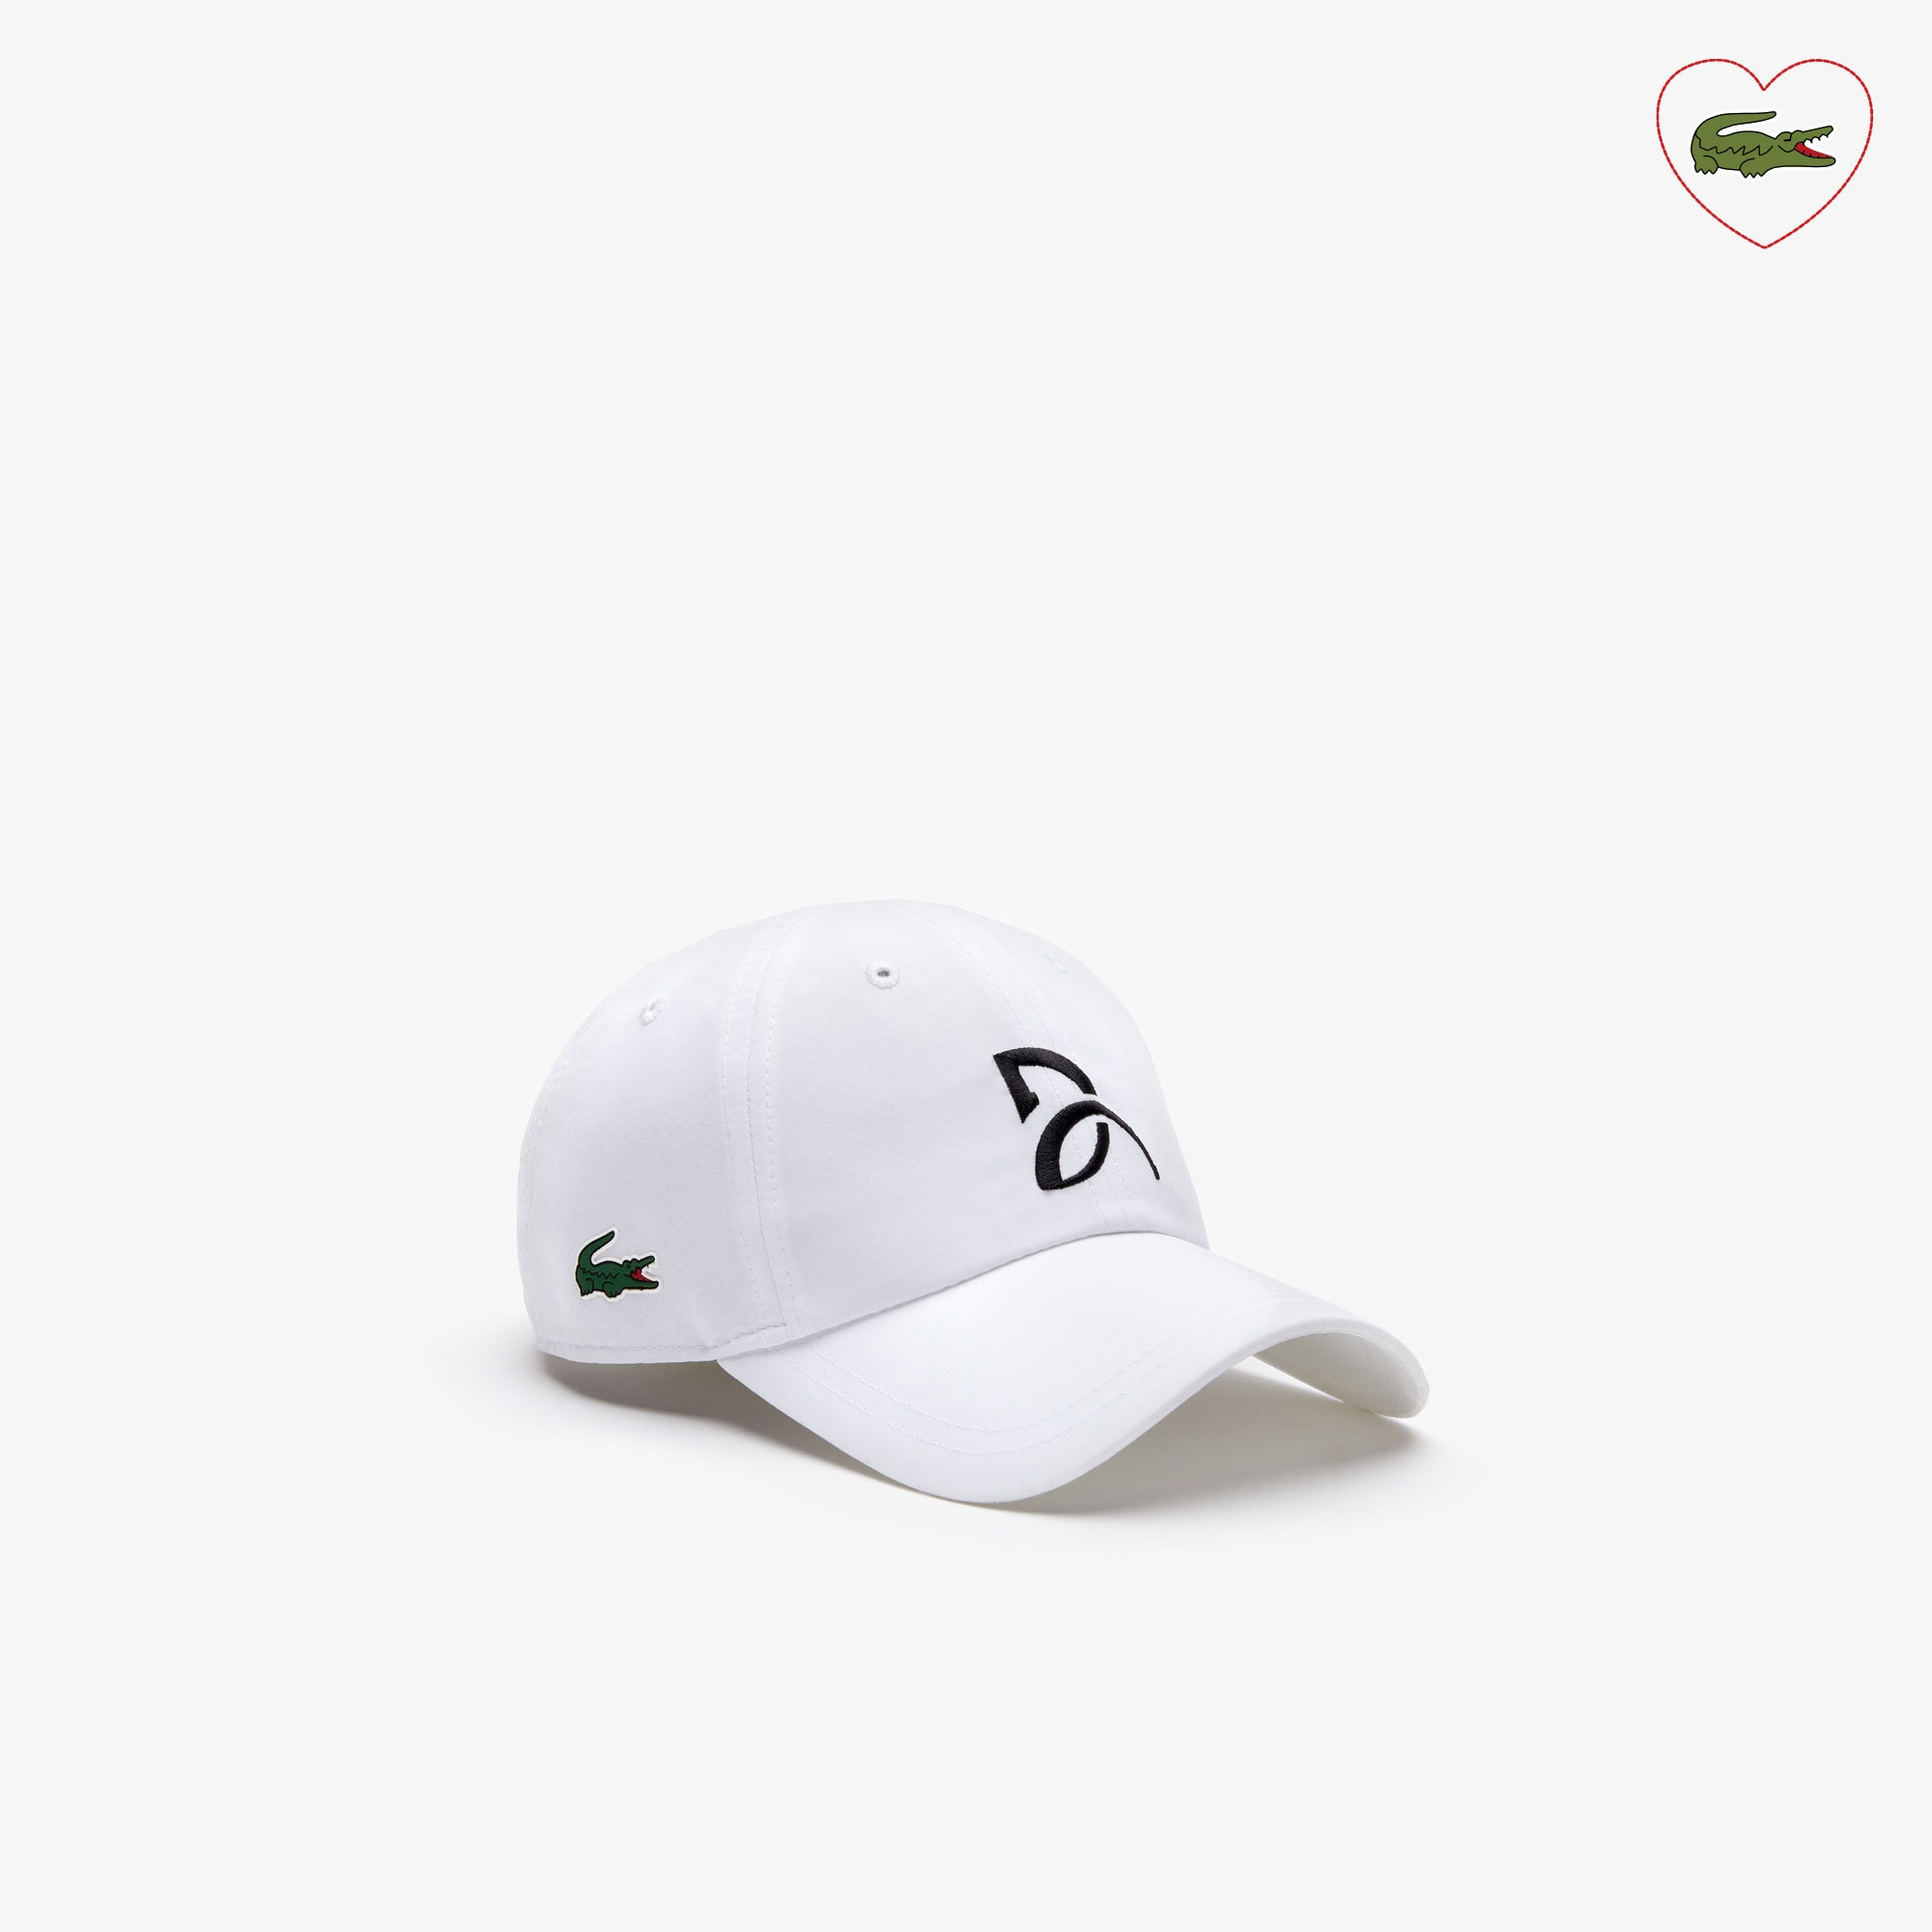 Berretto Con Visiera Tennis Lacoste Sport in Microfibra - Collezione Support With Style